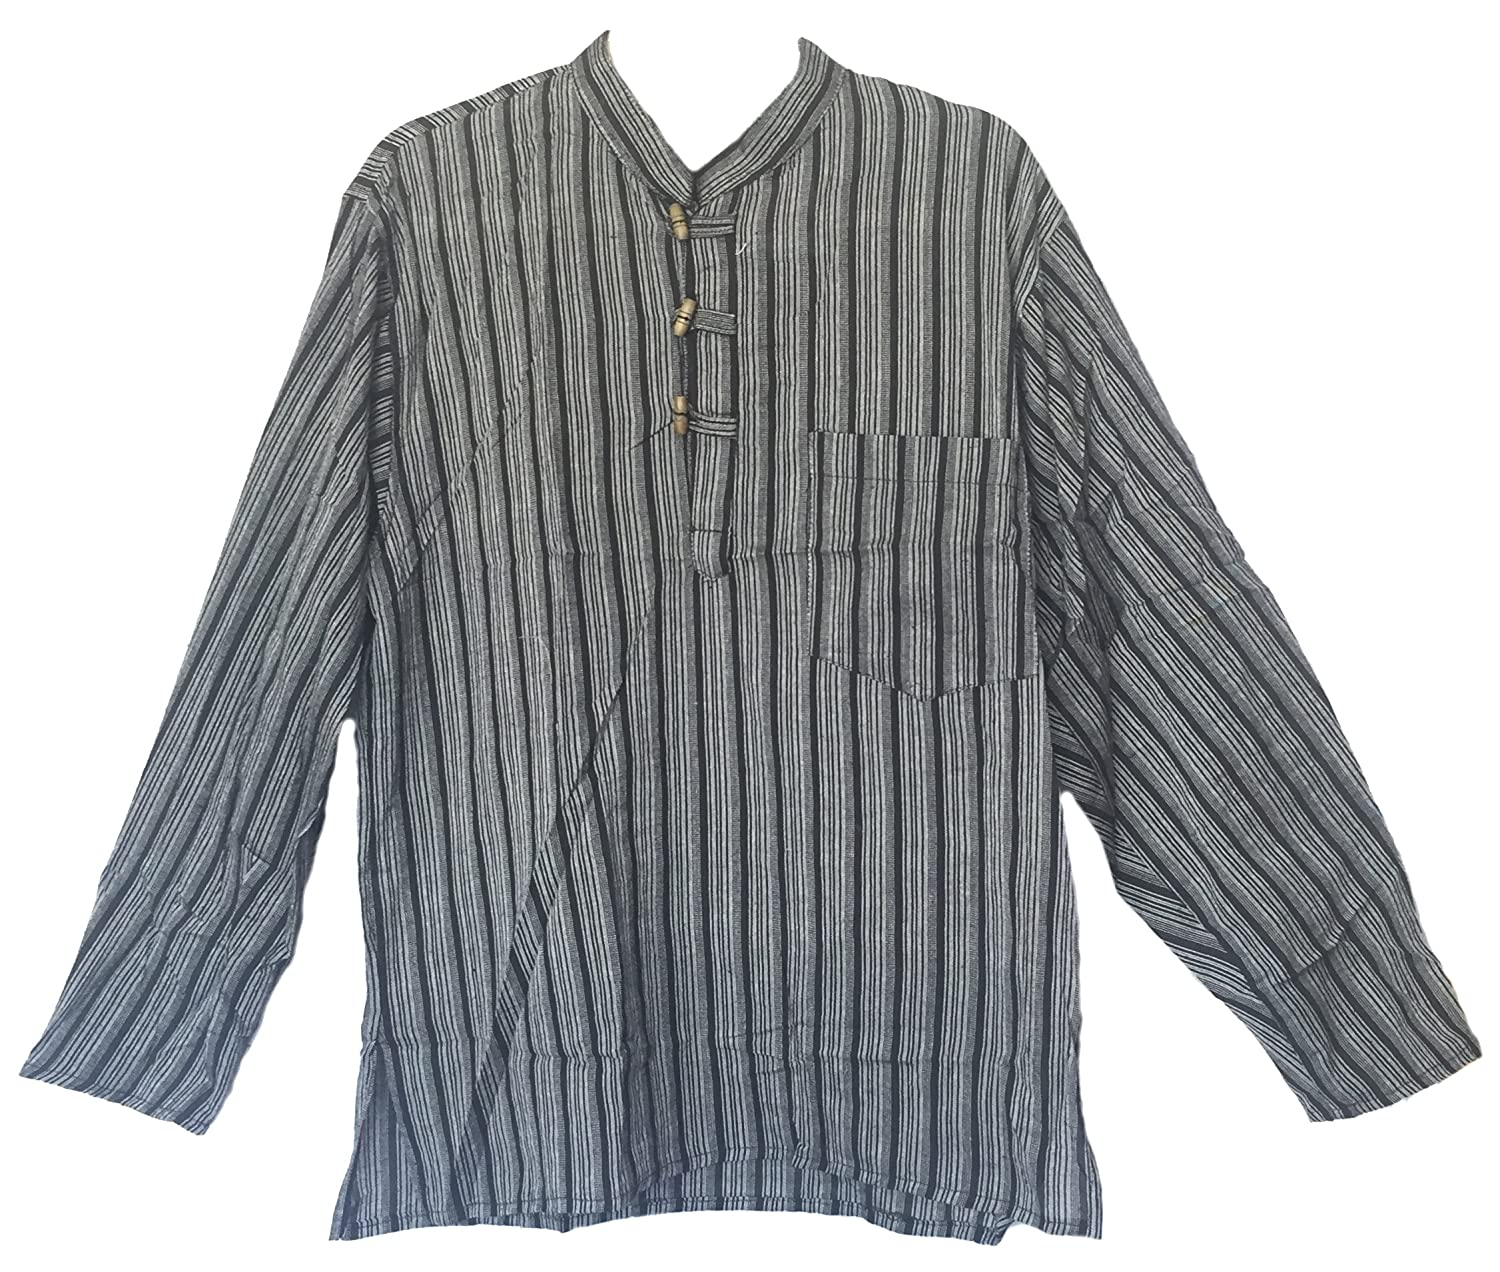 Men's Hand Loomed Black Stripe Cotton Banded Collar Tunic